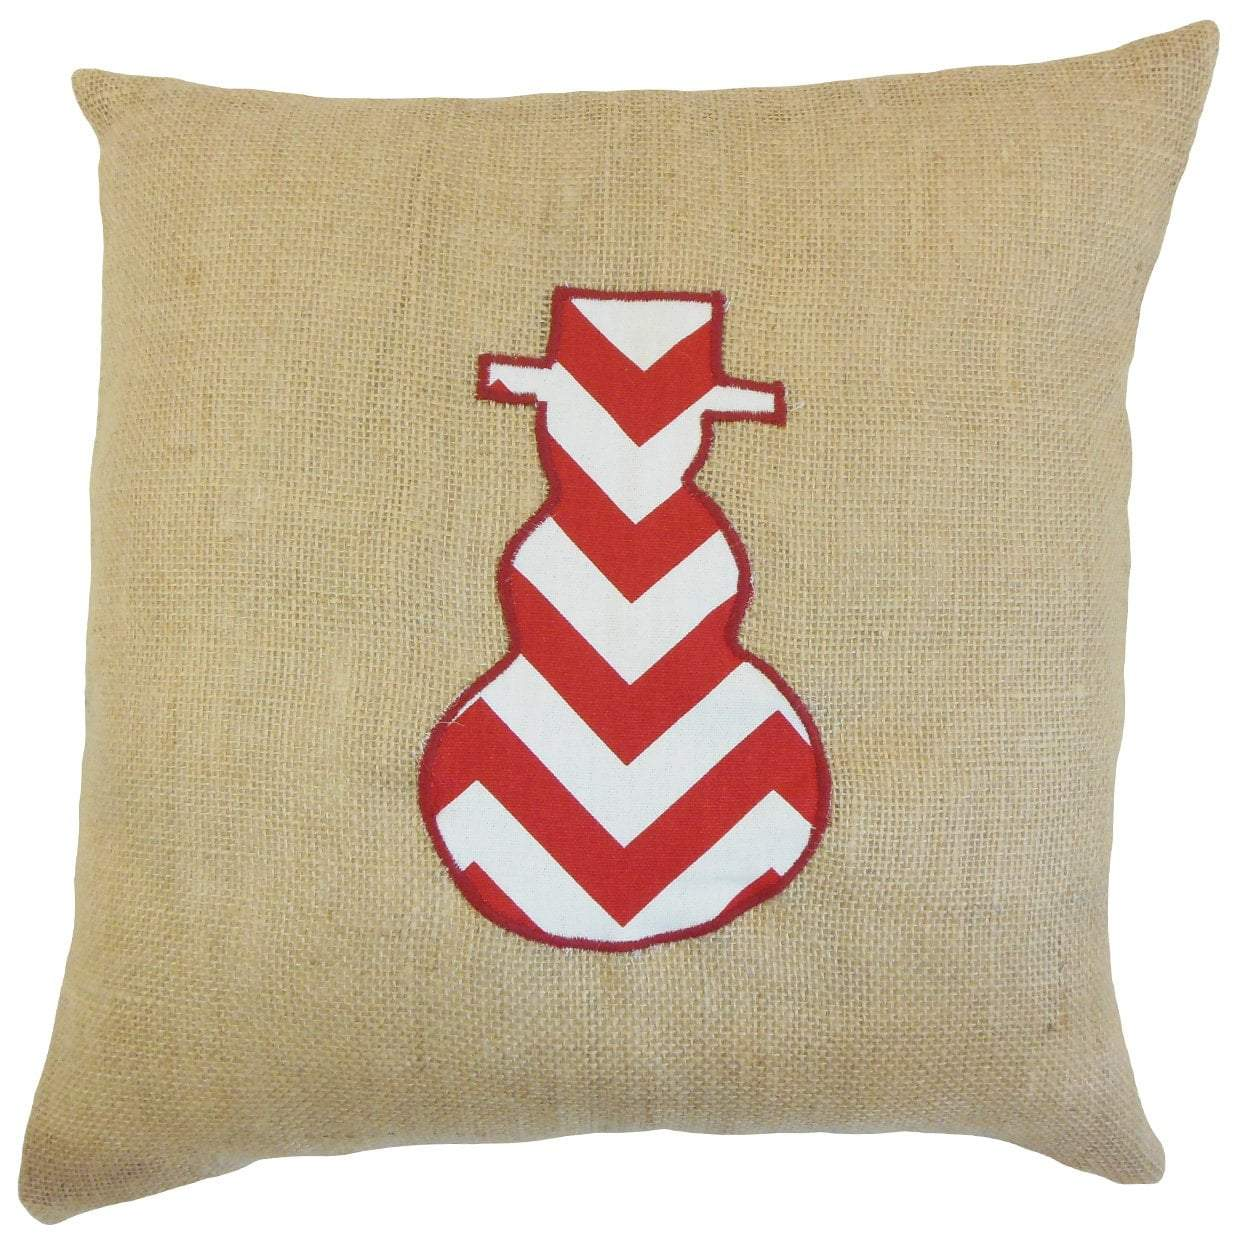 Red Linen Chevron Holiday Throw Pillow Cover